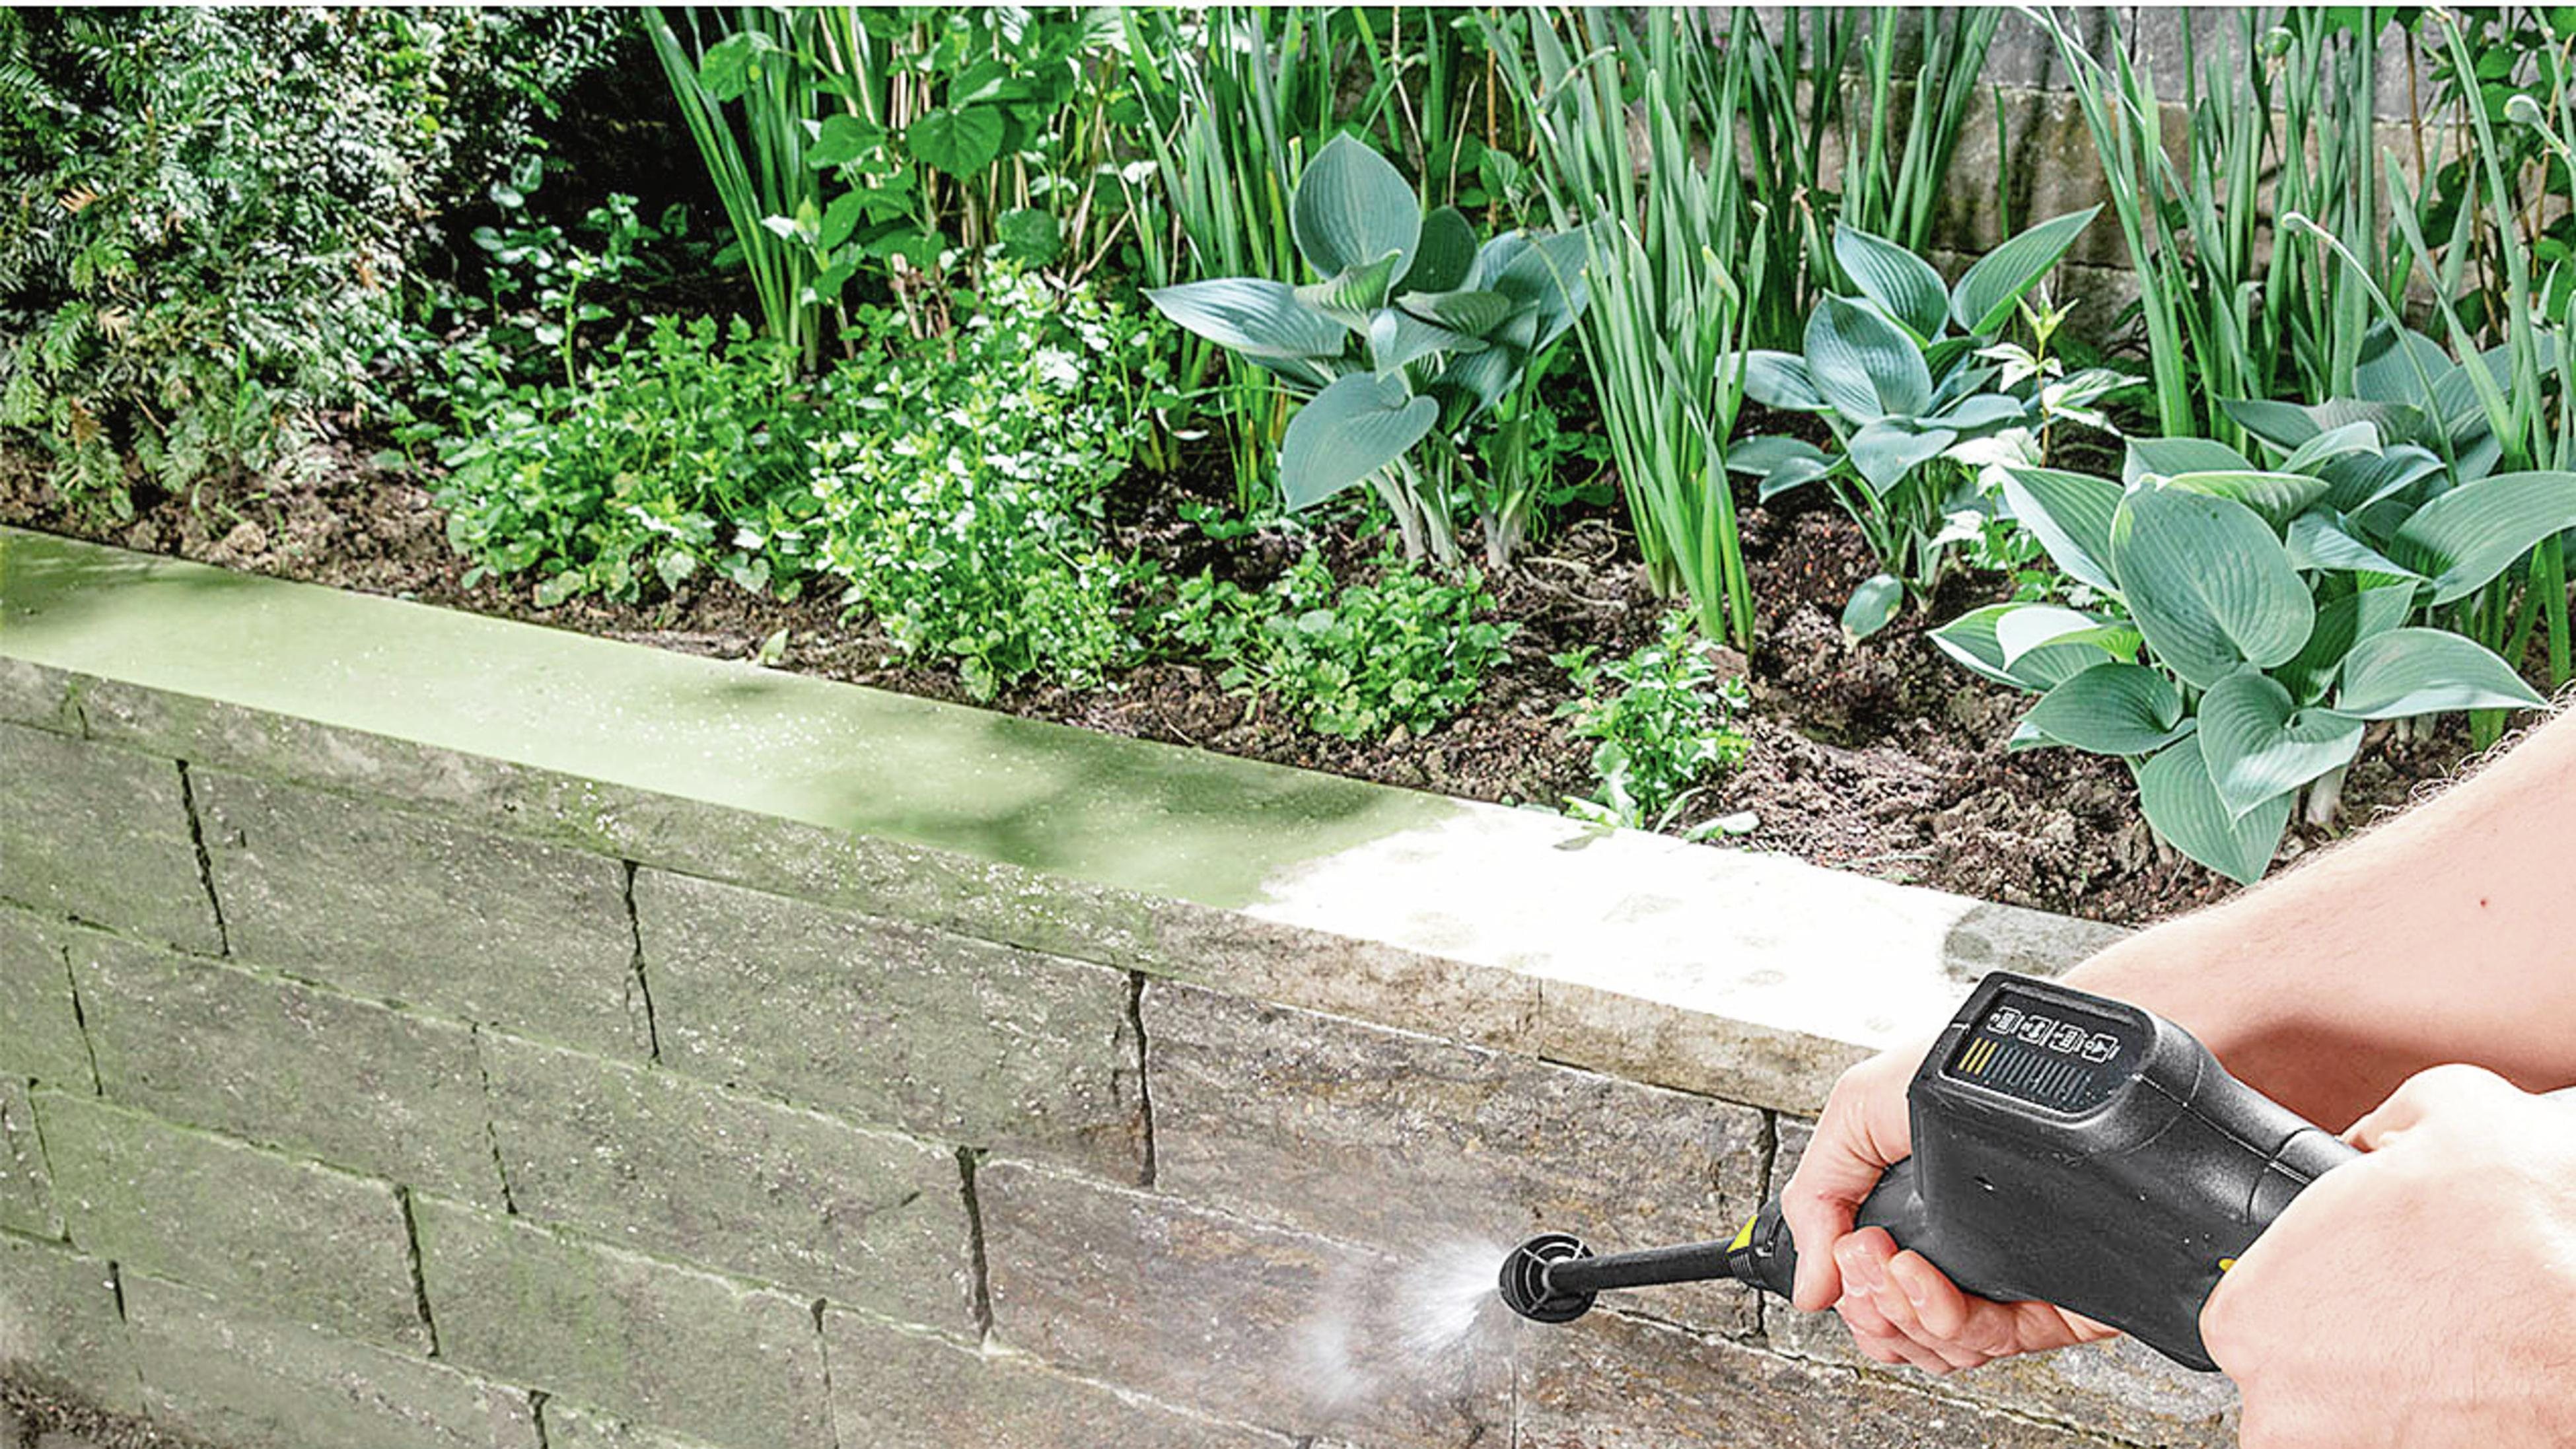 A pressure washer cleans a grey brick fence.